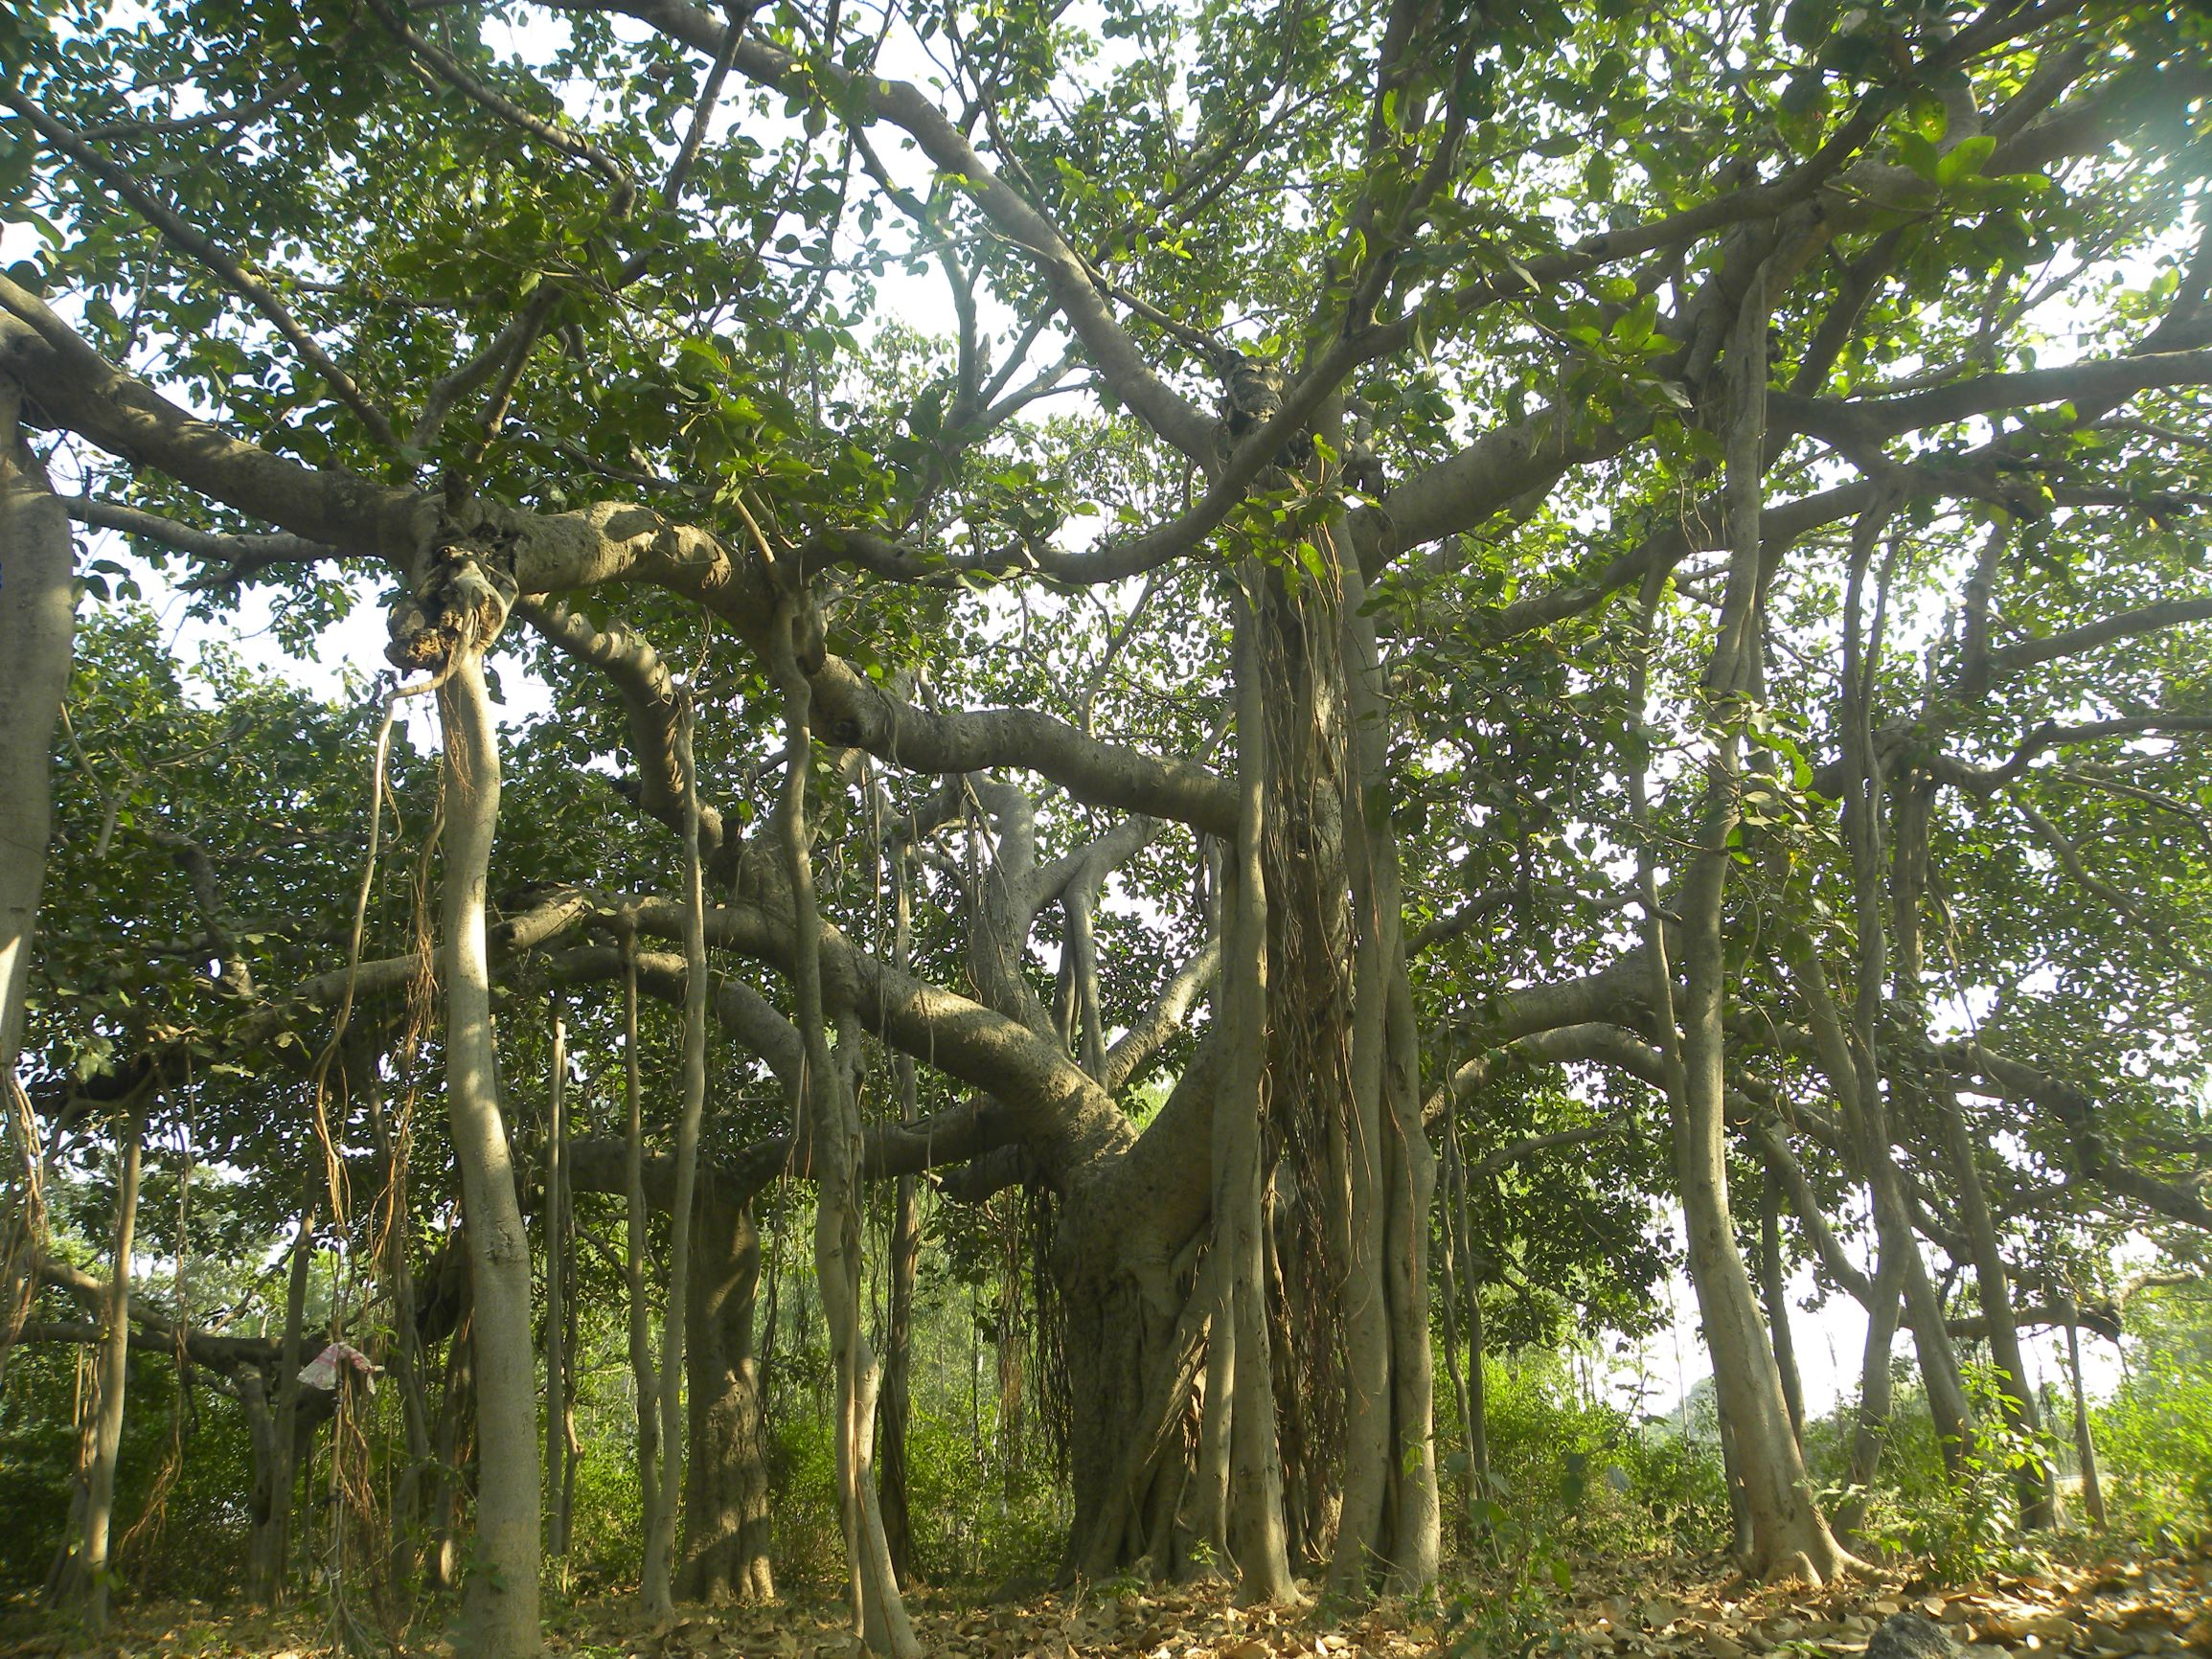 Ancient trees: conserving living heritage for posterity